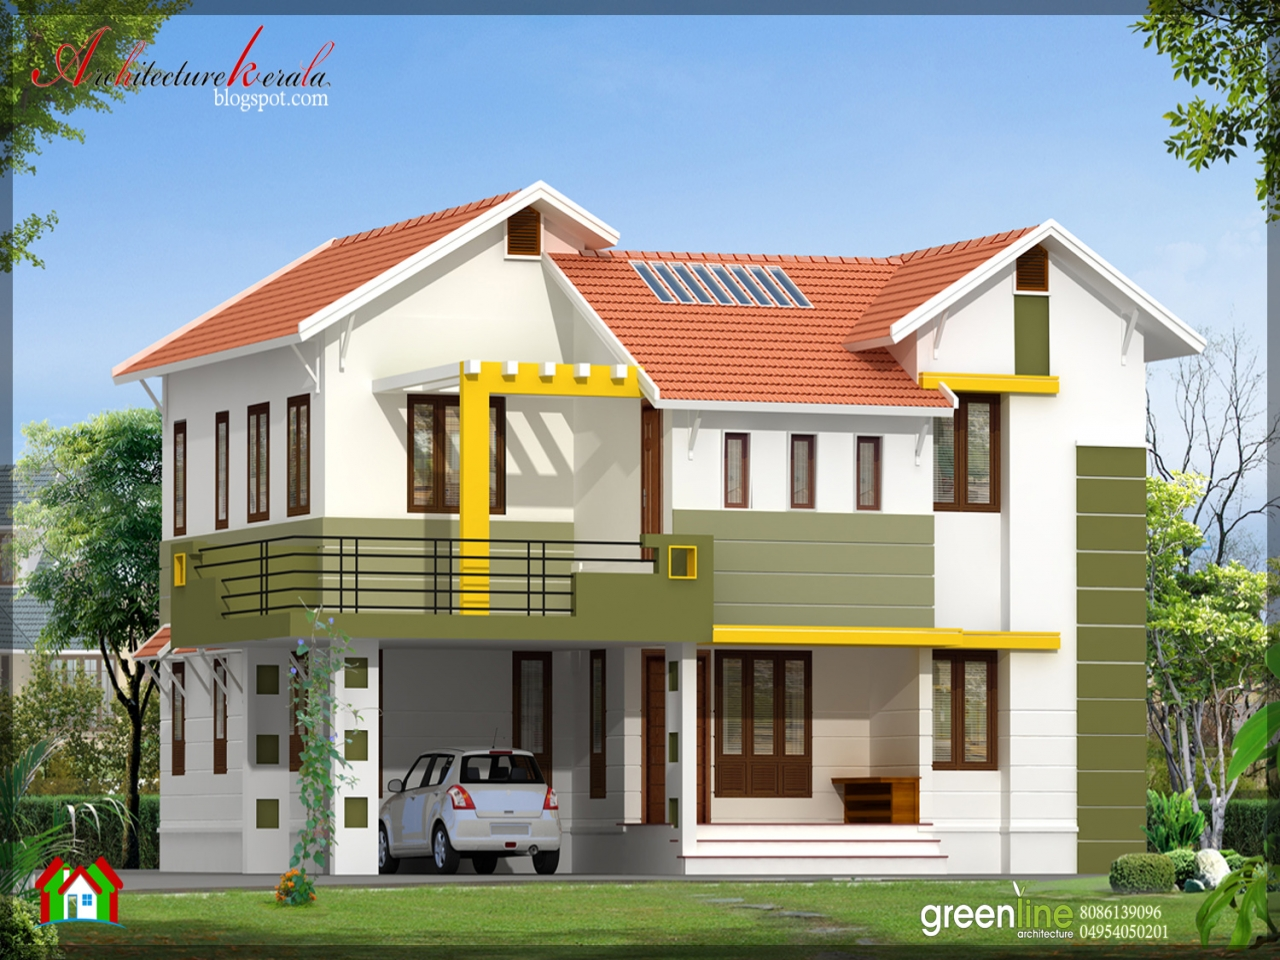 Simple modern house designs simple house design in india for Simple mansion